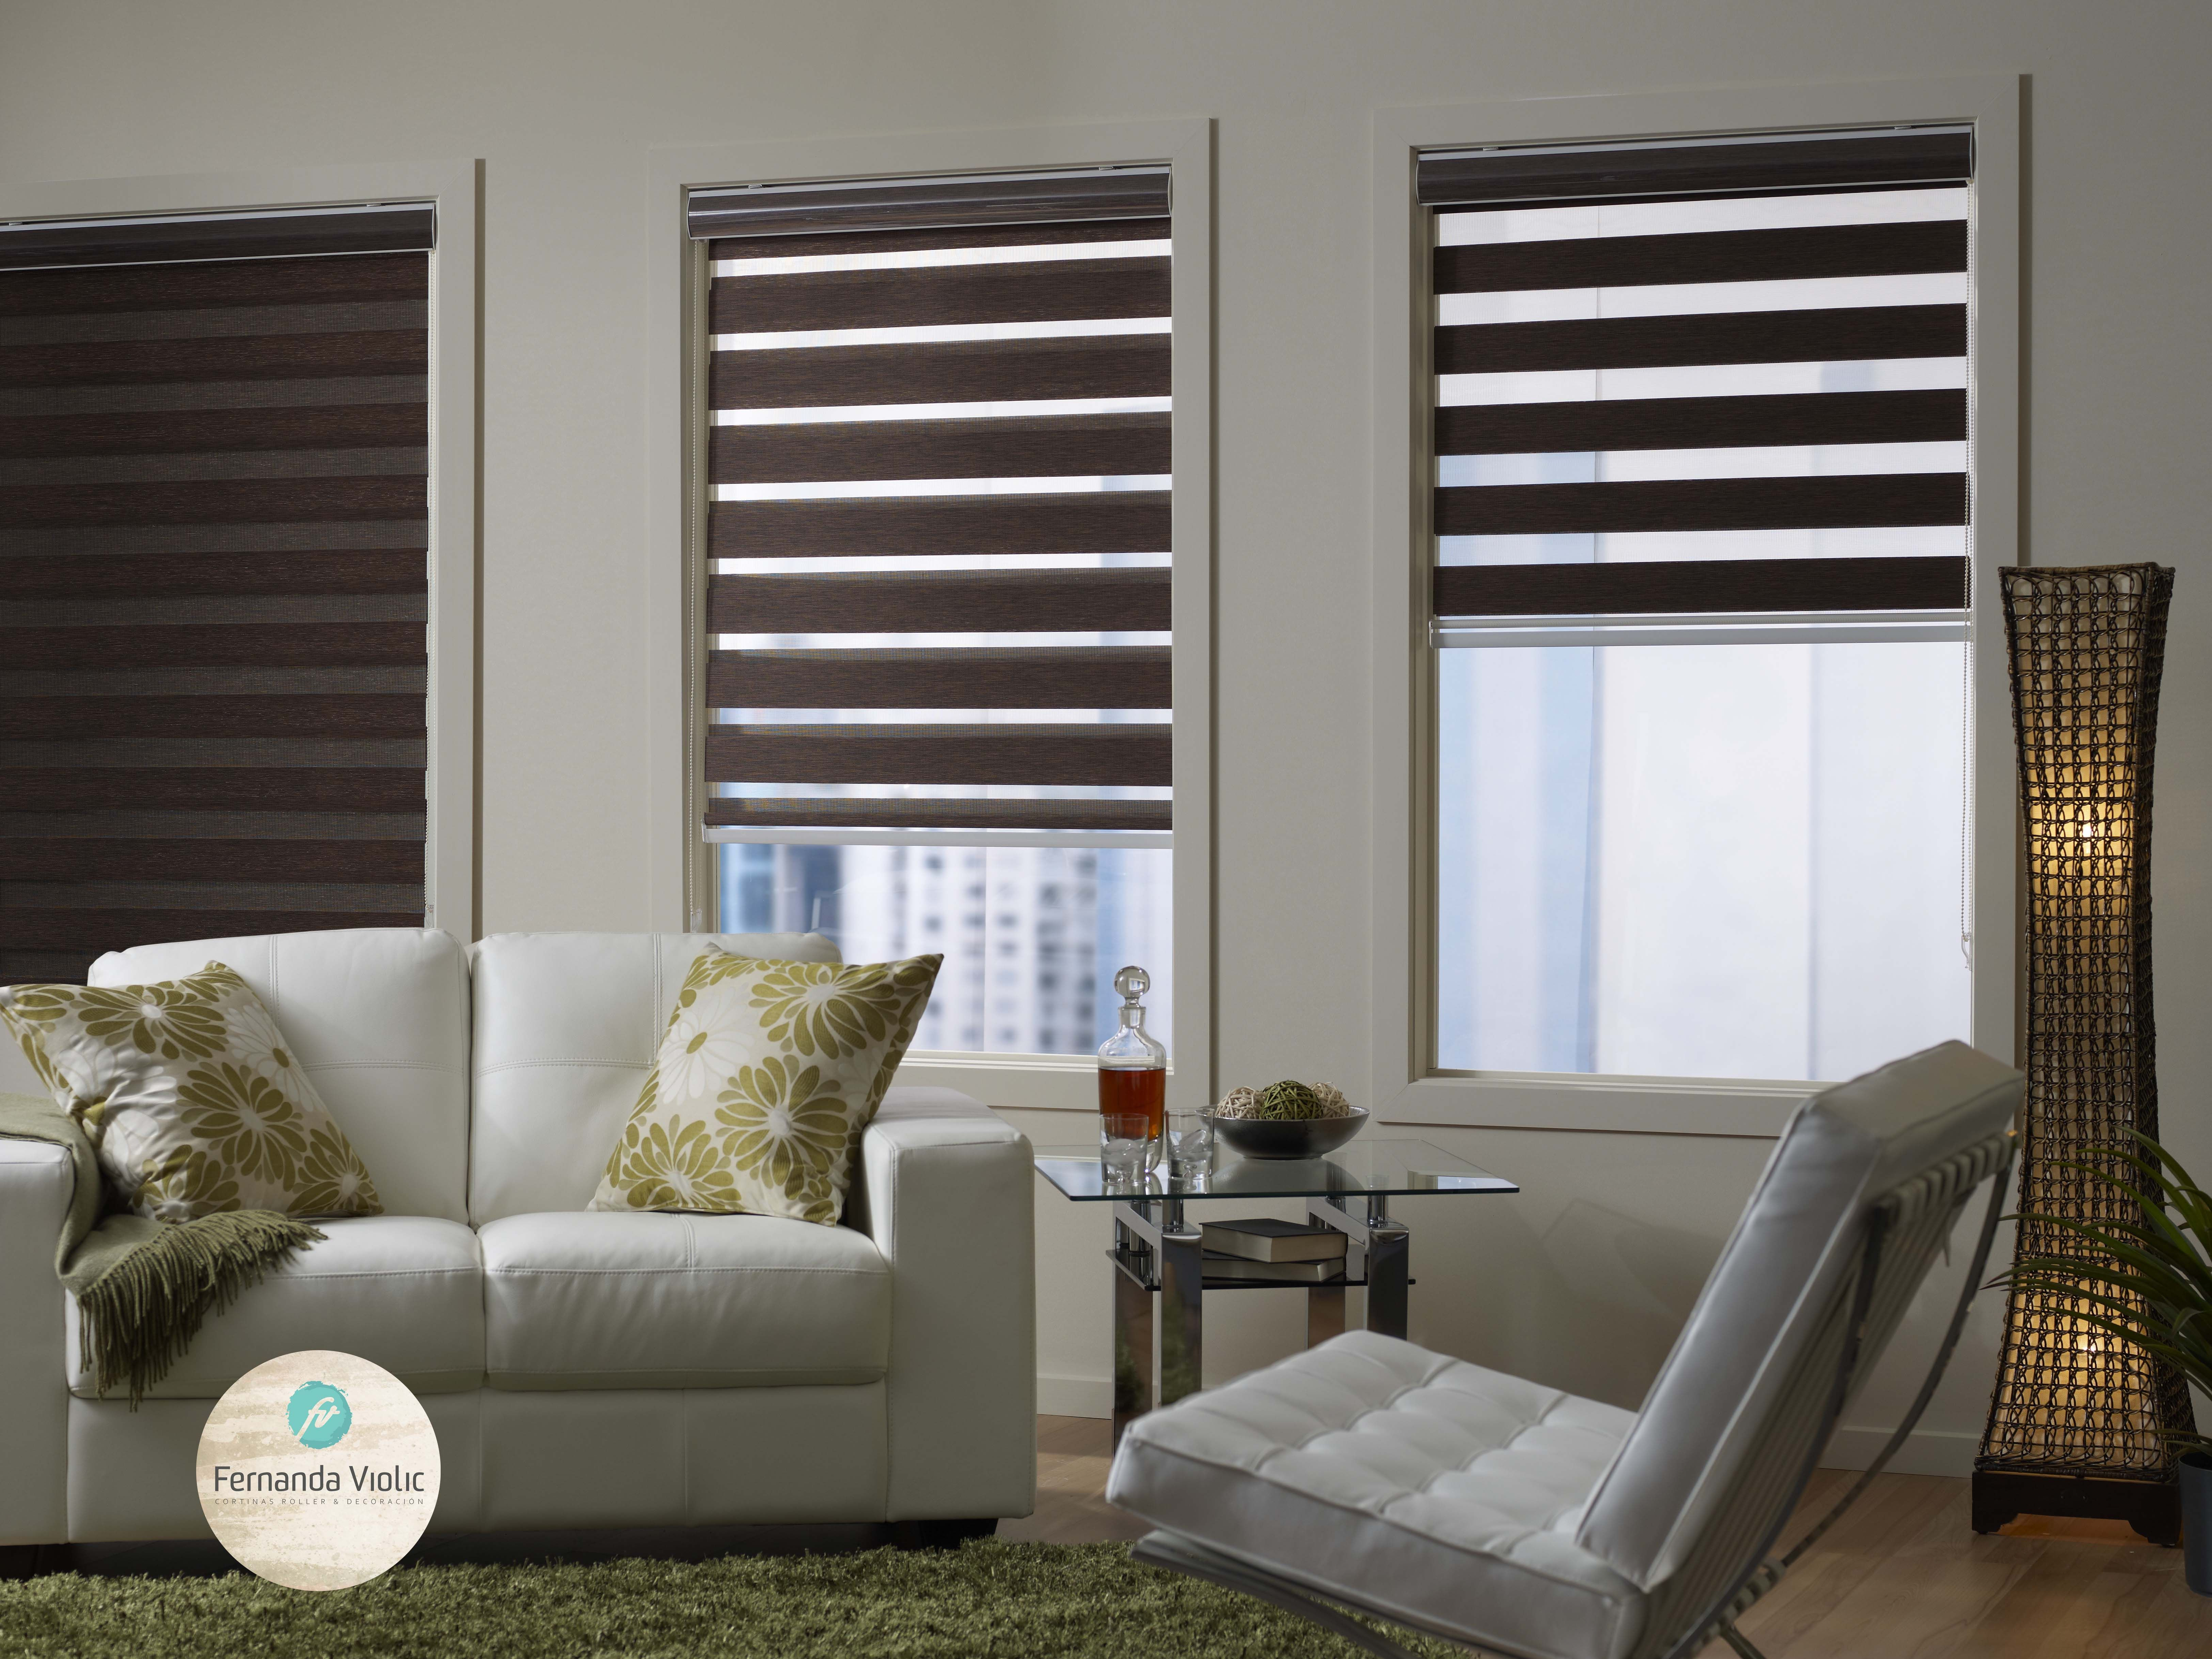 Uncategorized/birch tree fabric window panels/all products home decor window treatments curtains - Rollers